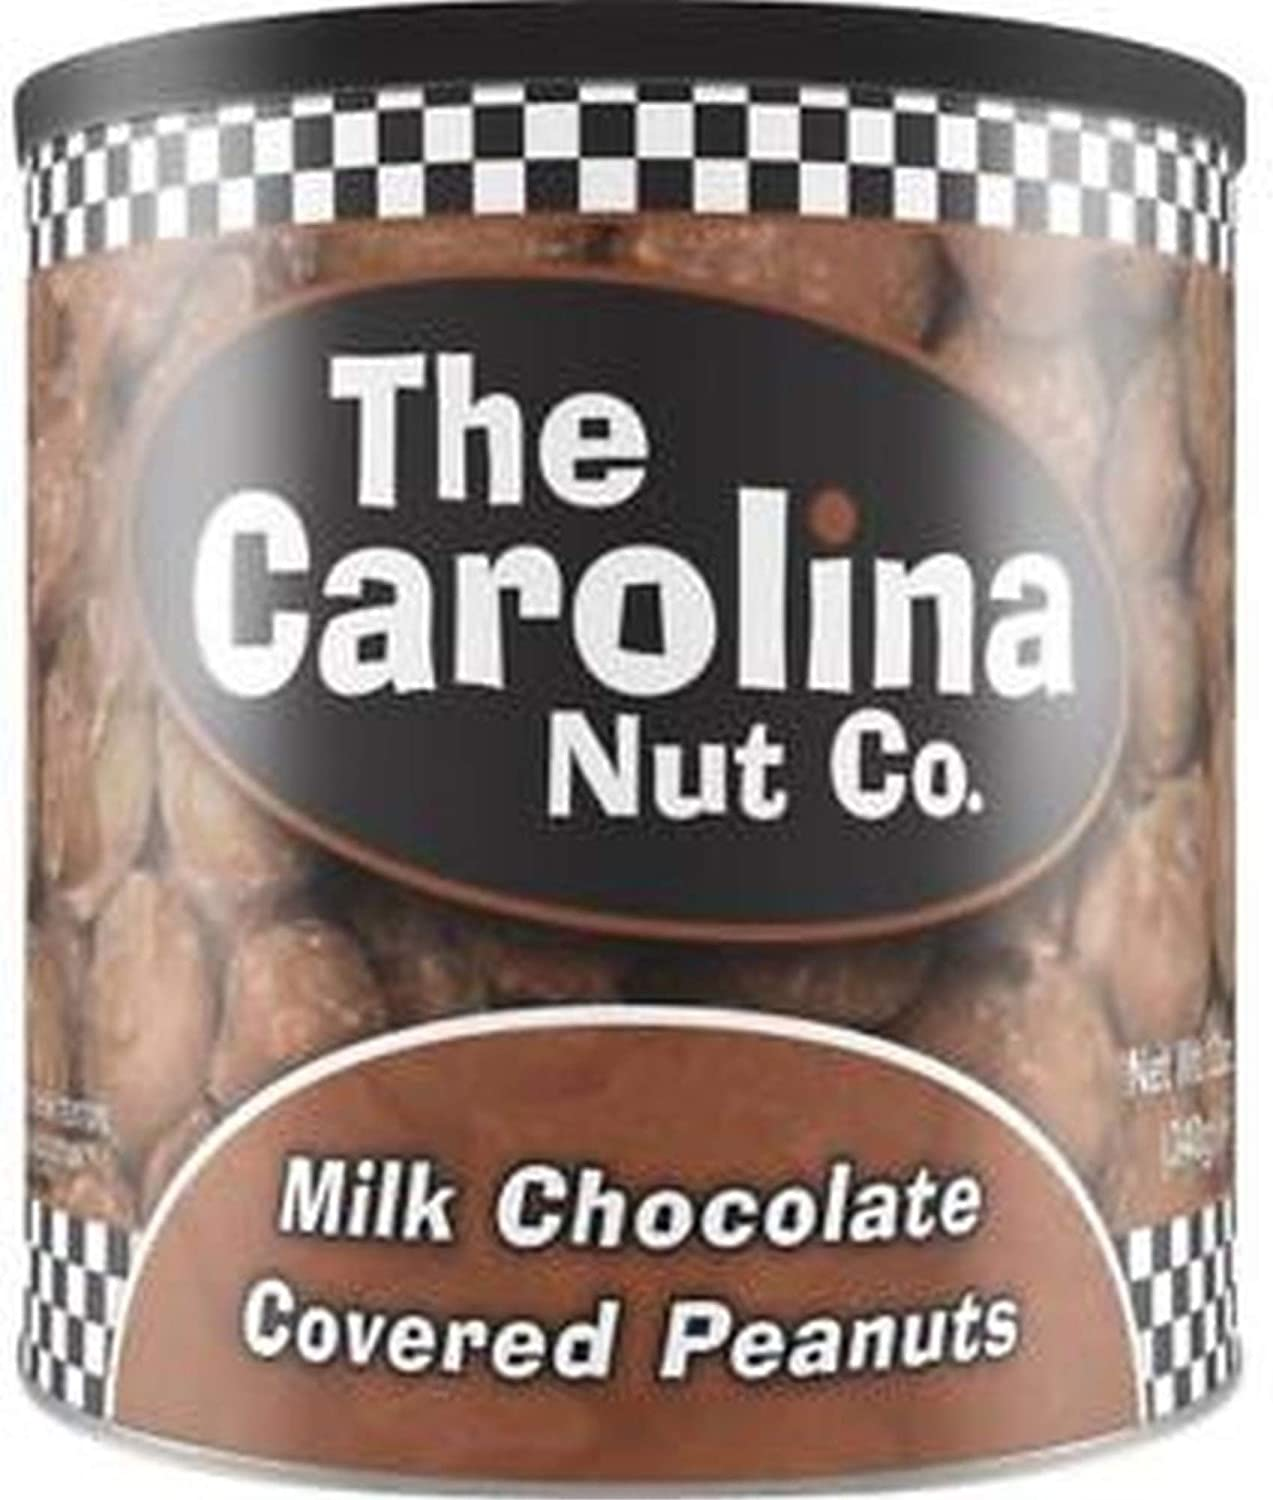 Max 85% OFF Carolina Nut Co. Chocolate Covered Peanuts Case 10 of: Luxury goods Can - oz.